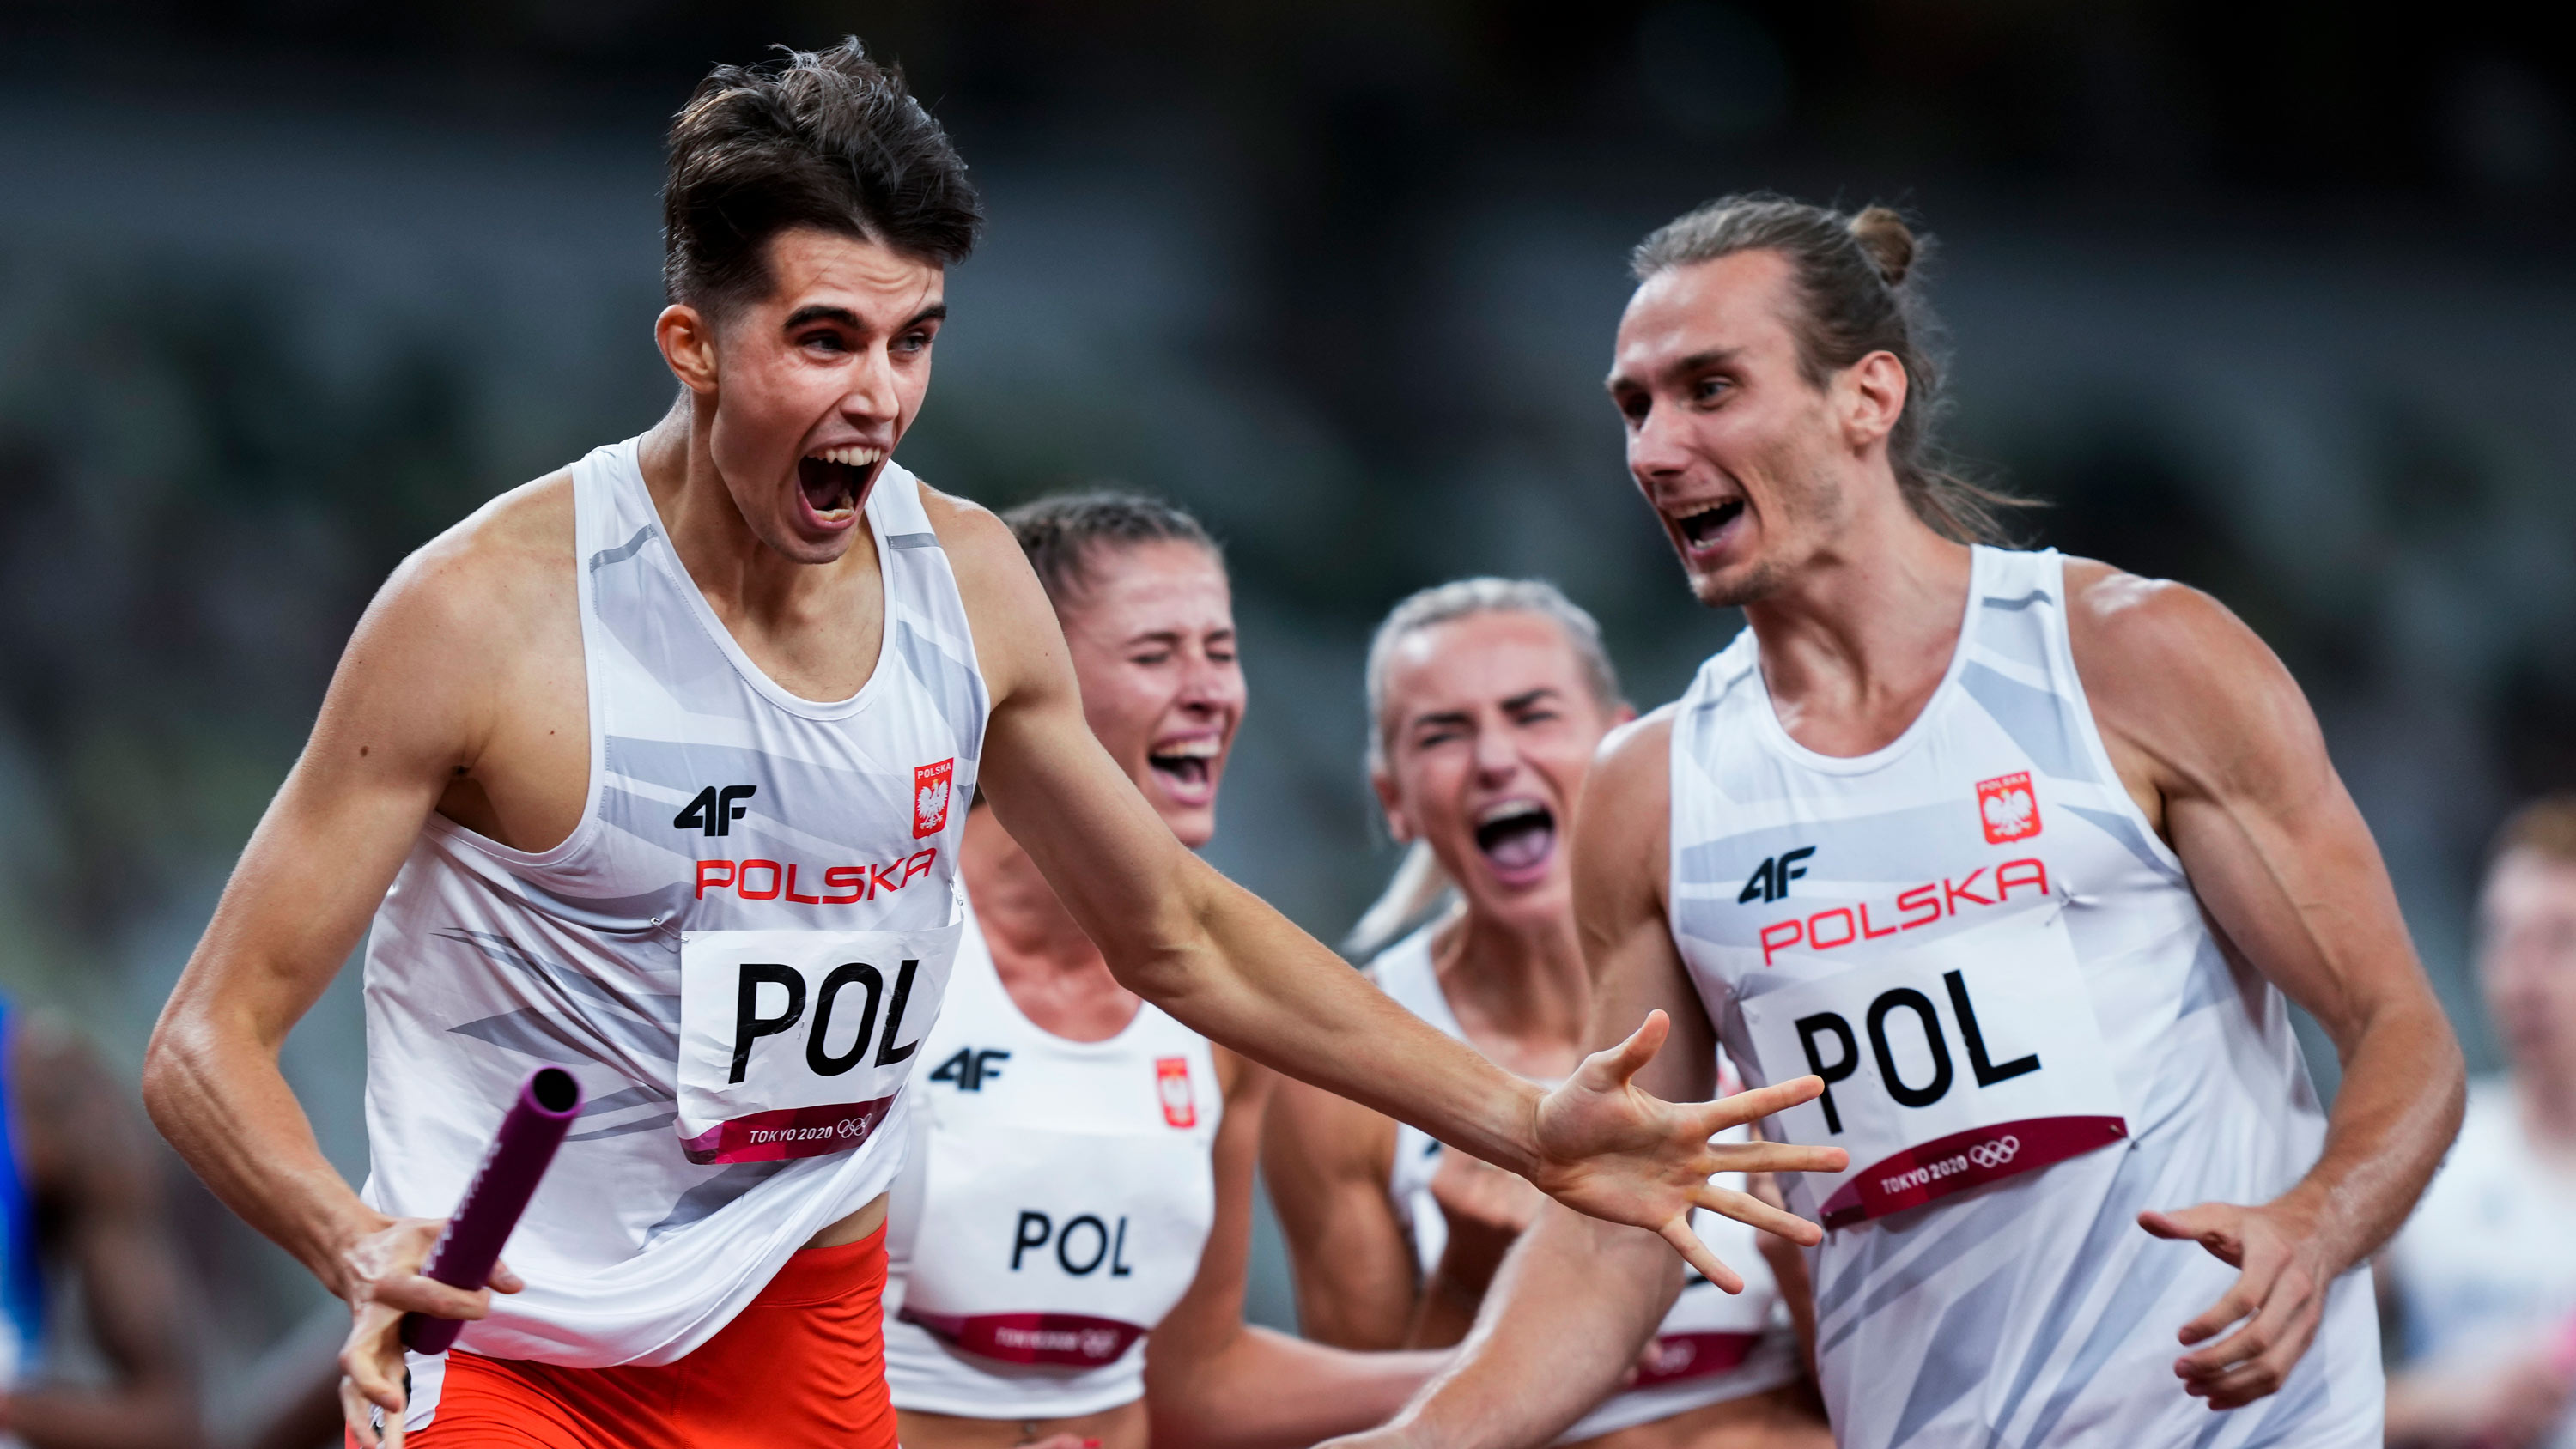 Team Poland celebrates after winning the 4x400 meter mixed relay final on July 31.